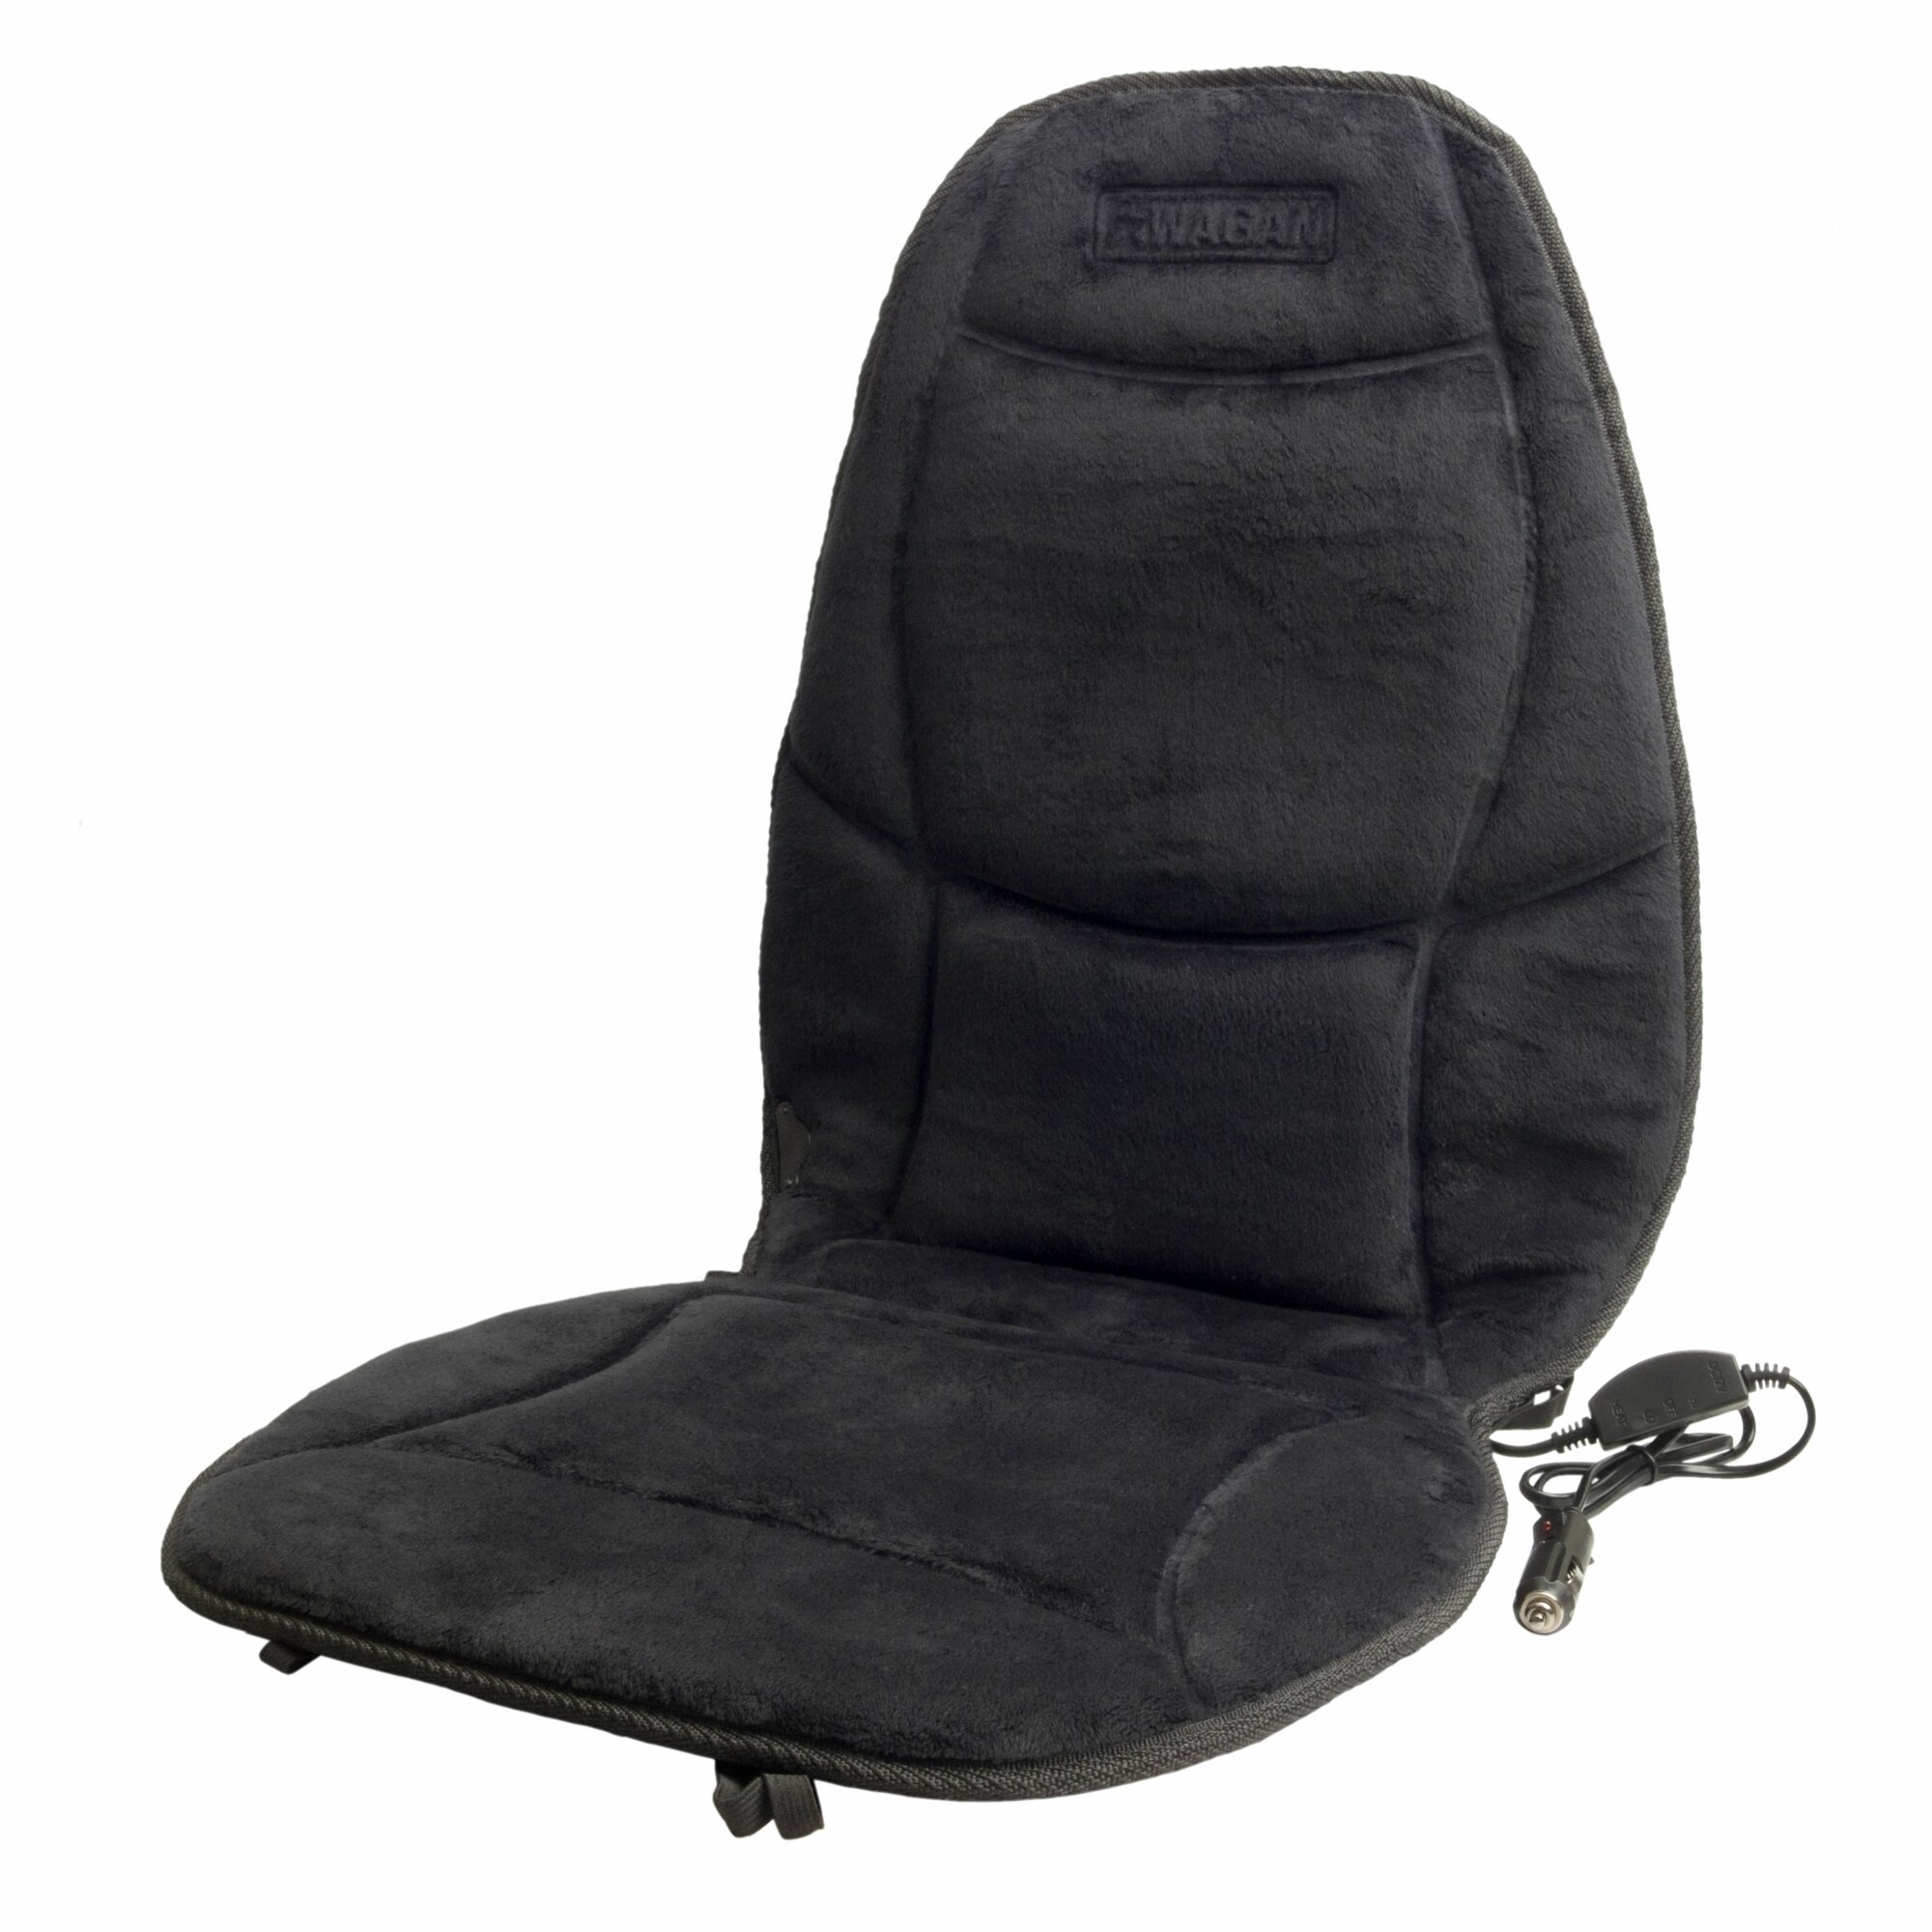 Wagan Velour Heated Seat Cushion with Lumbar Support  Reviews